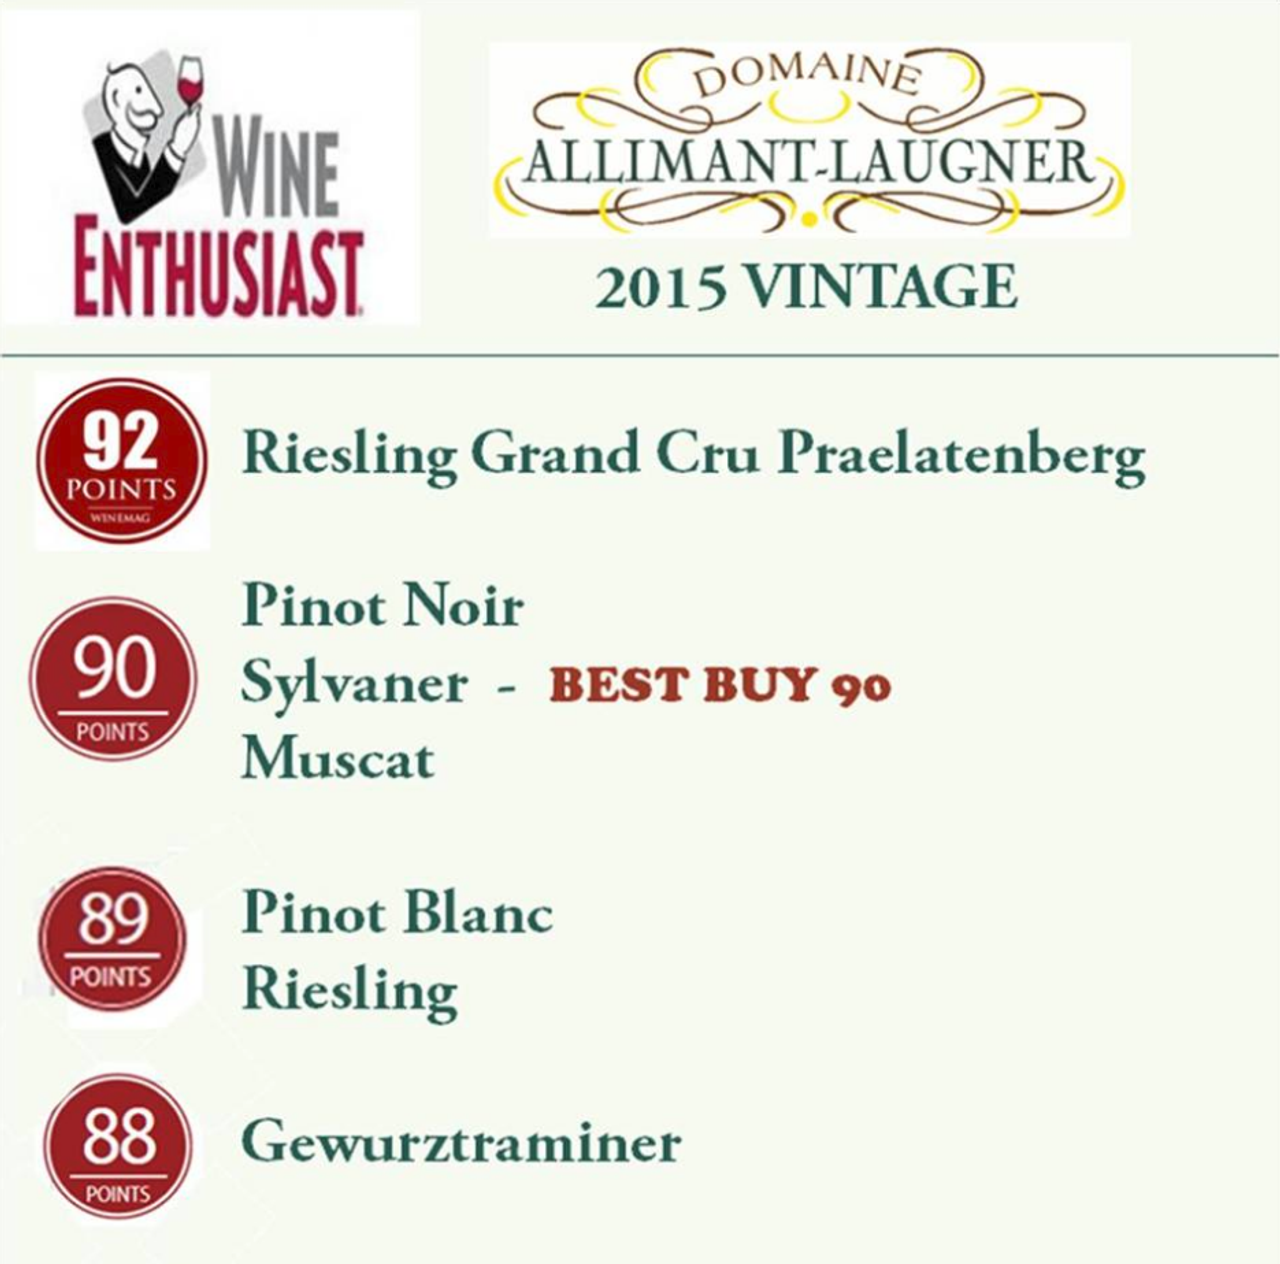 90 points for Muscat d'Alsace 2015